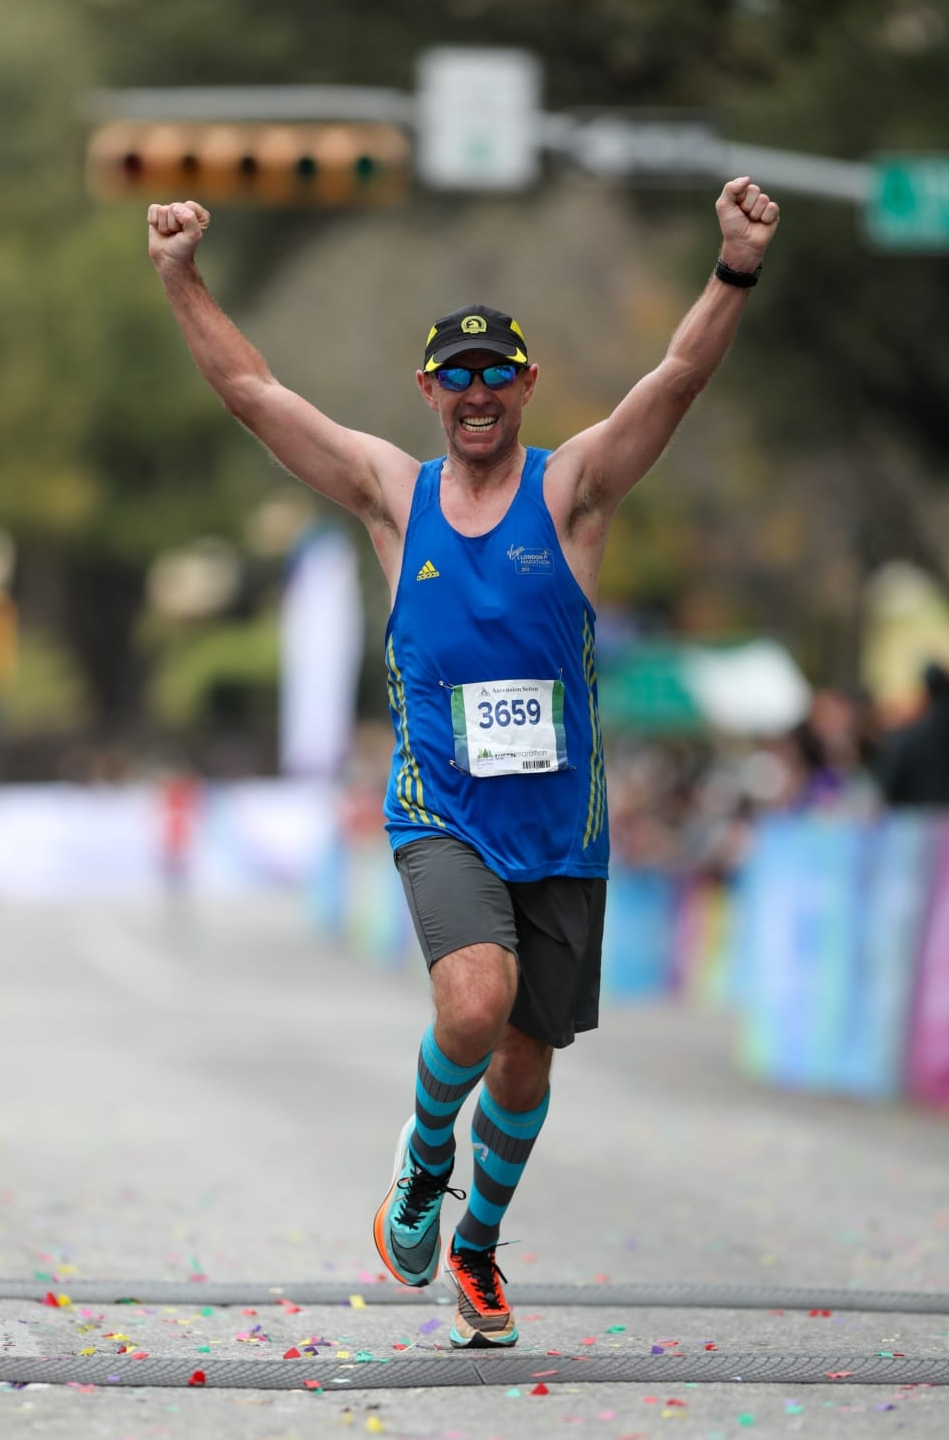 Image of a male runner with his arms raised in triumph crossing the 2020 Ascension Seton Austin Marathon finish line. Credit to Scott Flathouse.